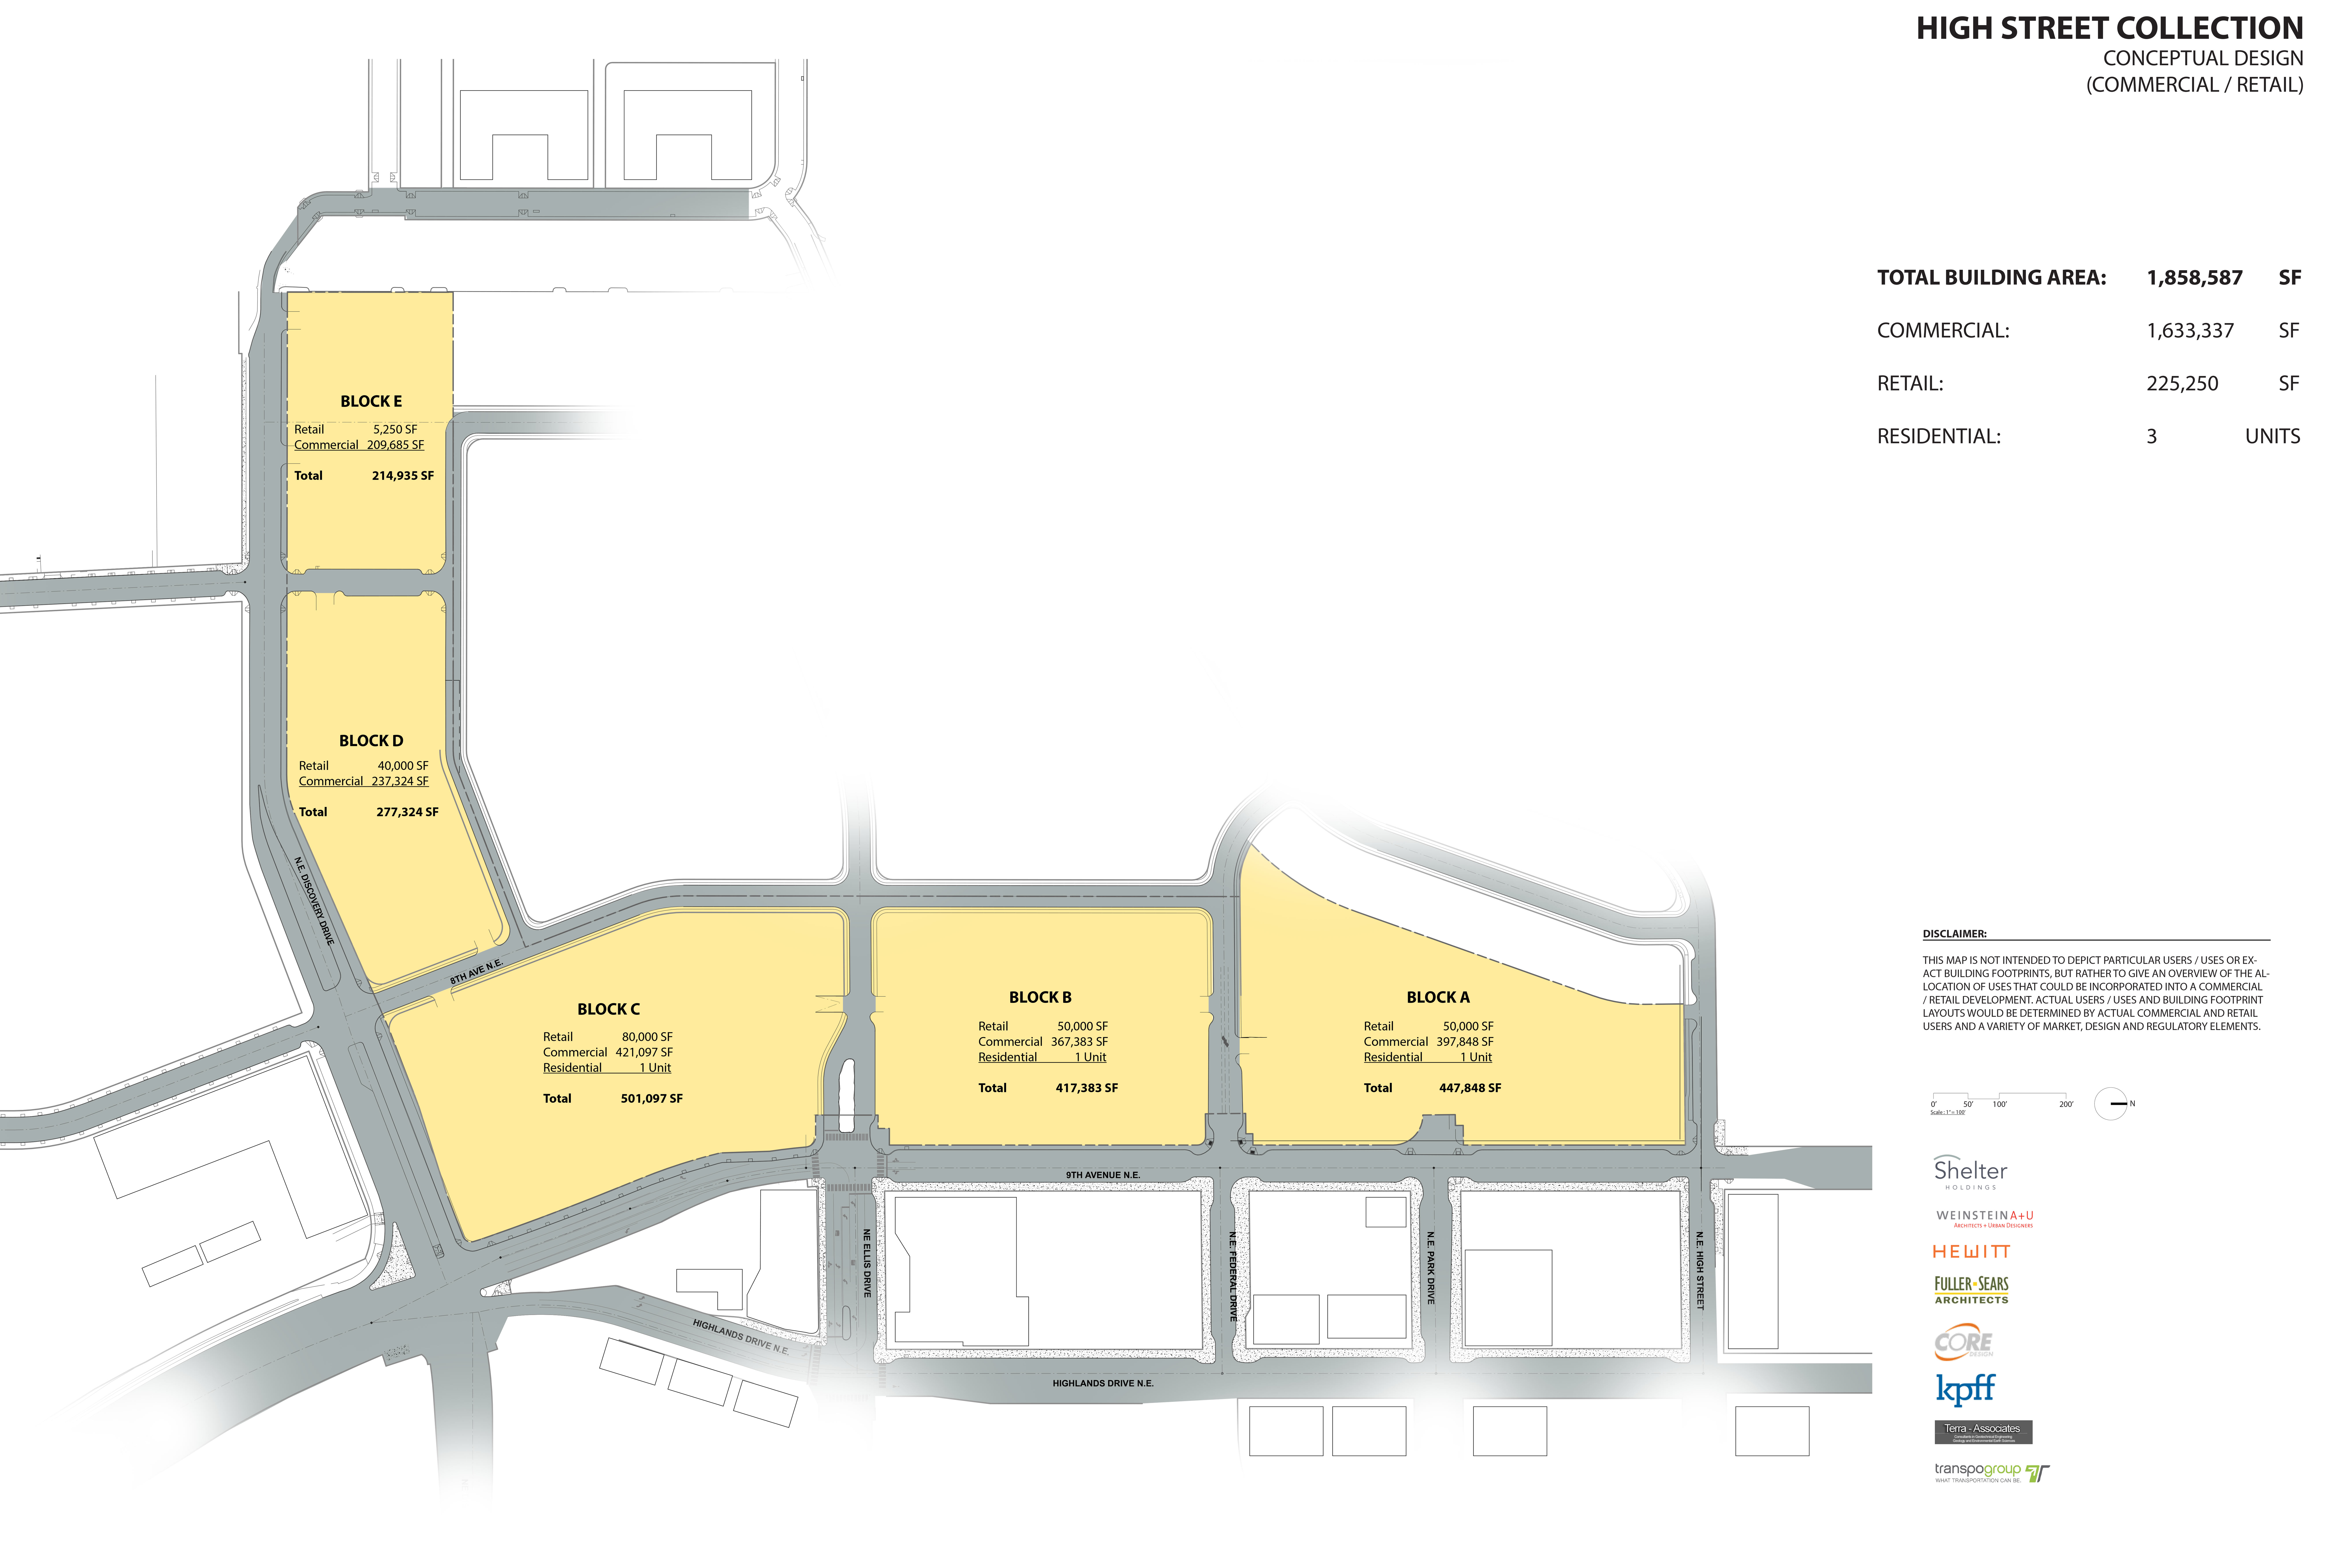 The High Street Collection Current Proposal